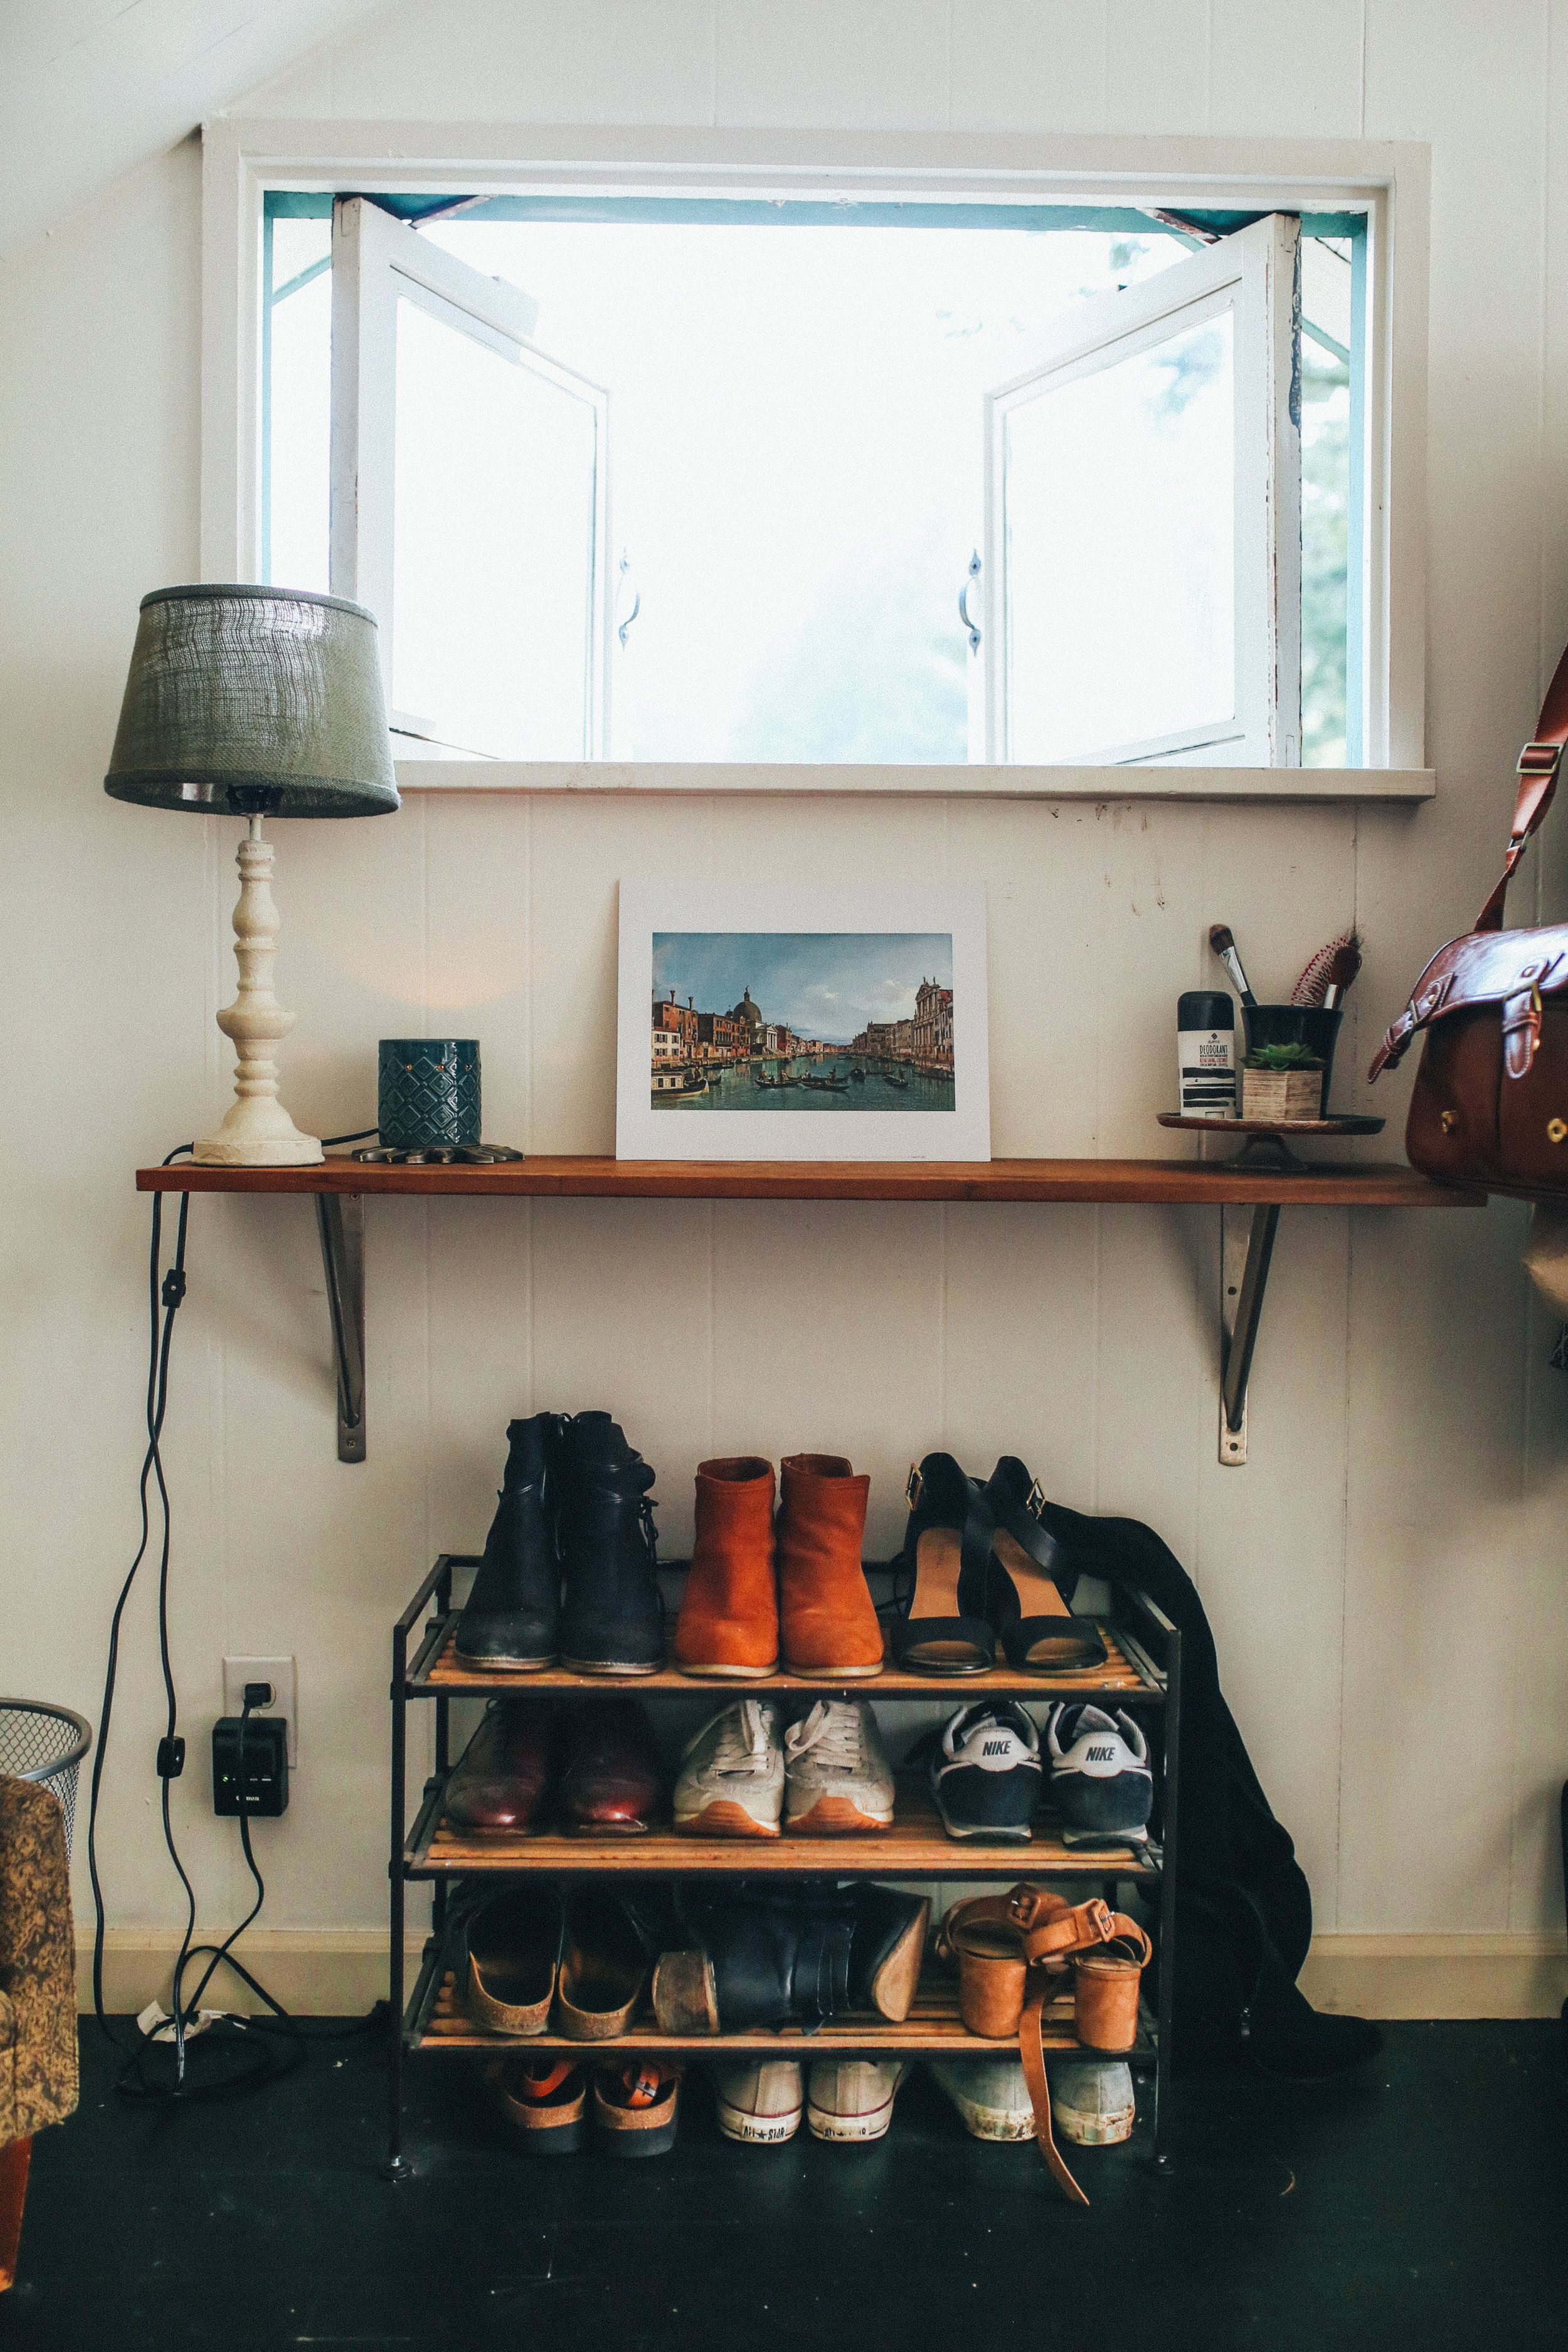 Beneath this adorable window is a shelf, and a bookshelf.